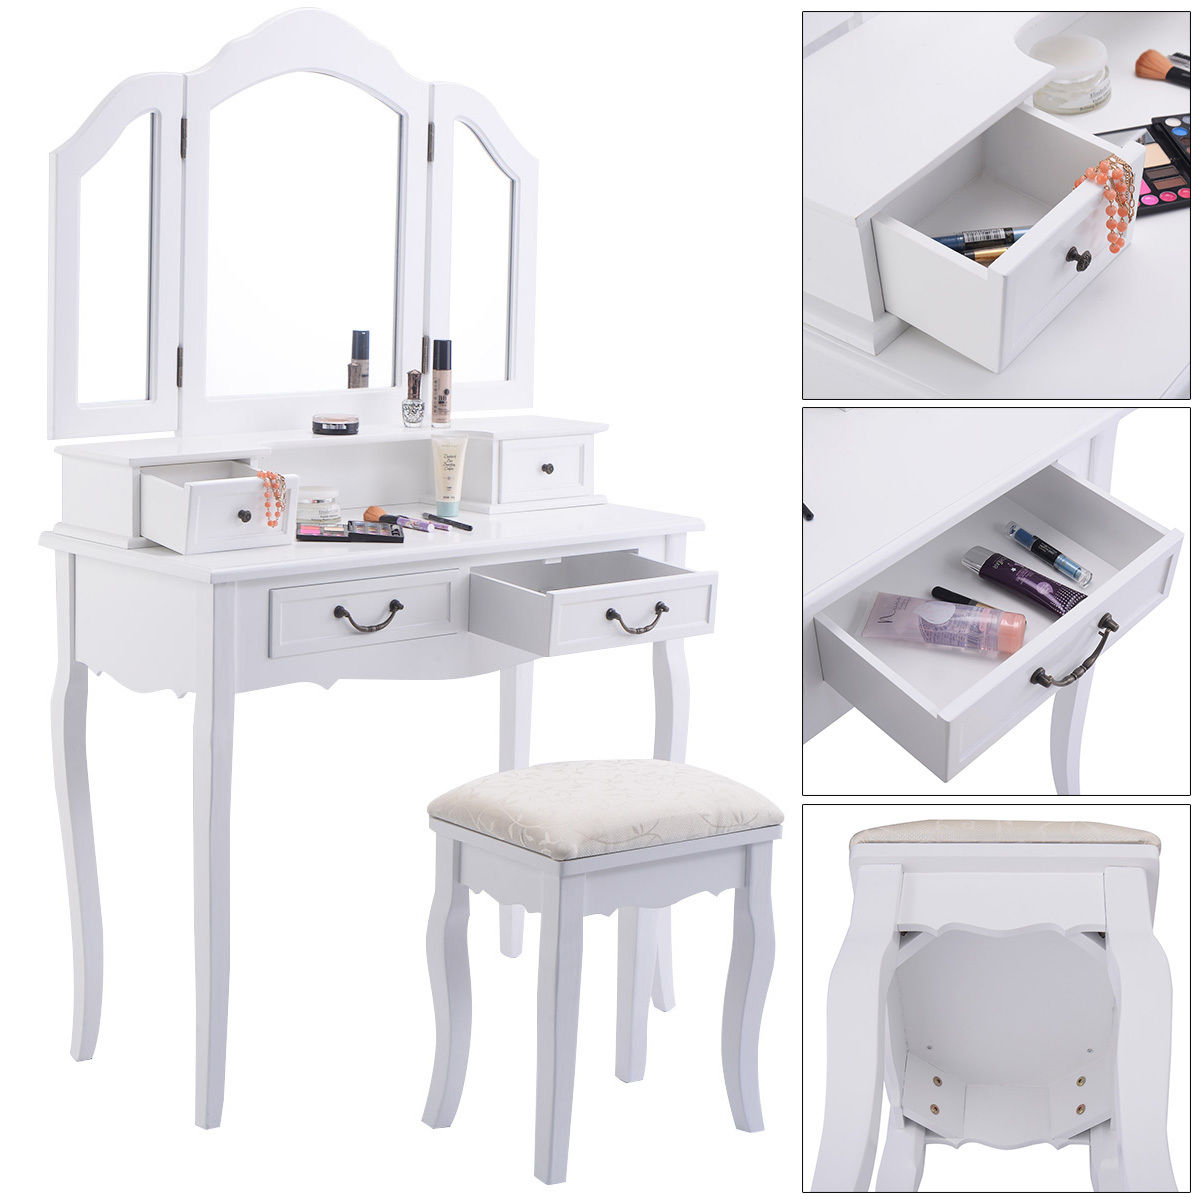 Tri Folding Mirror White Wood Vanity Set Makeup Bathroom Table Dresser 4 Drawers Stool